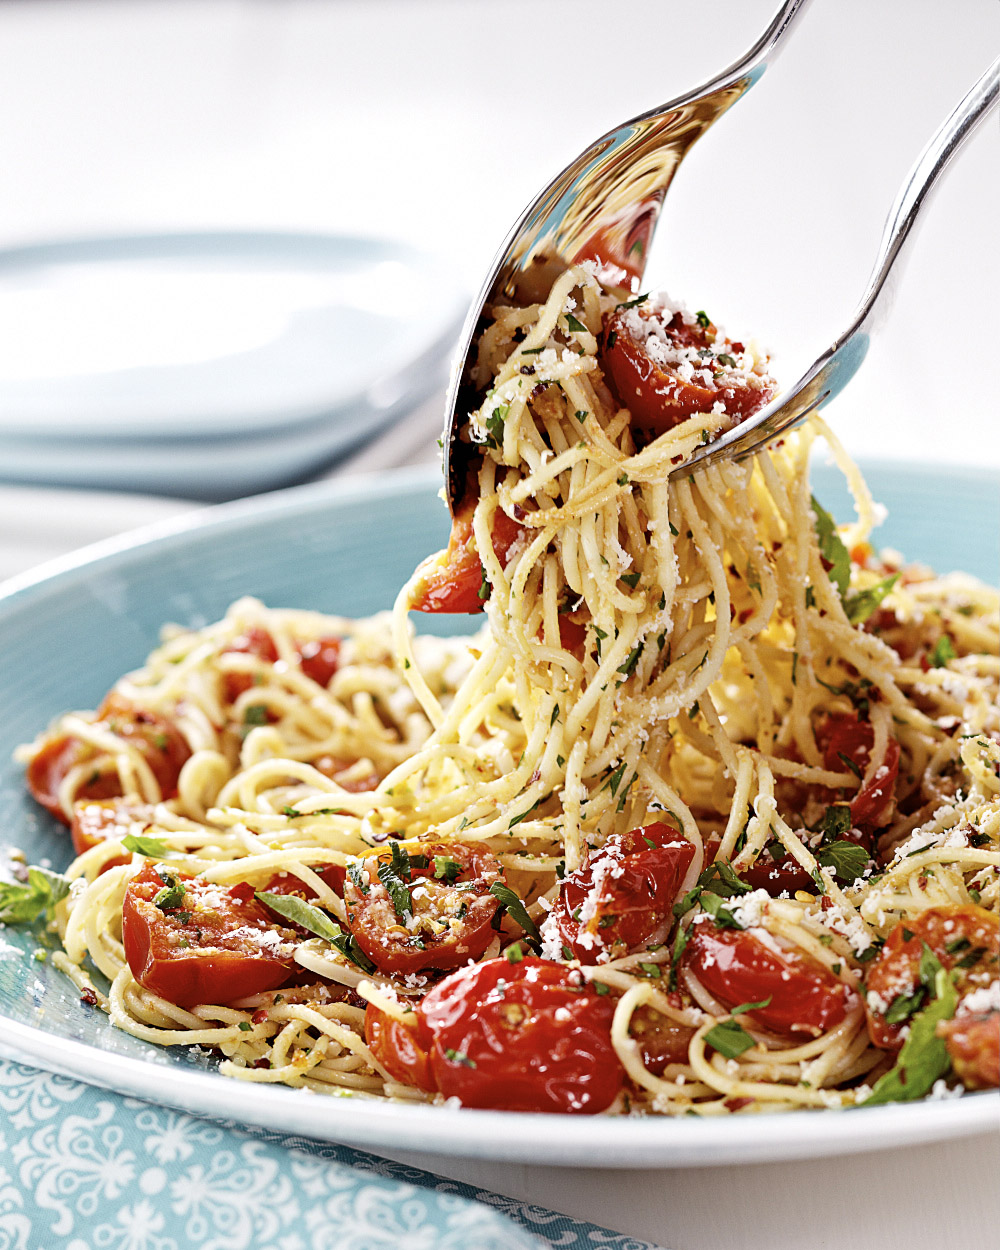 Seared_Cherry_Tomato_Pasta-248.jpg